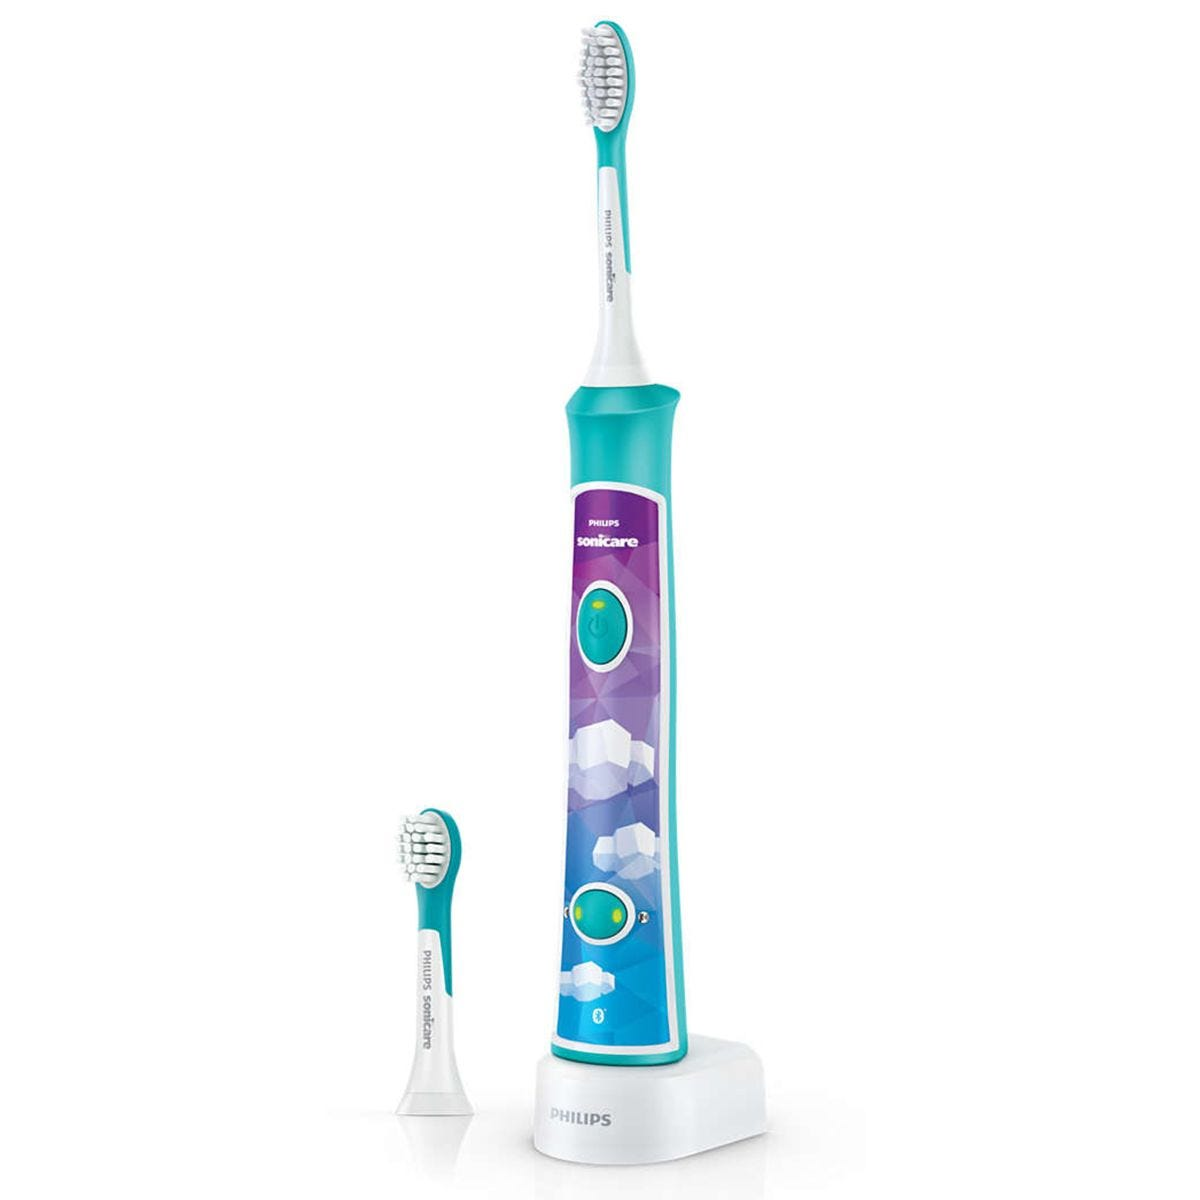 Philips Sonicare for Kids Connected Electric Toothbrush